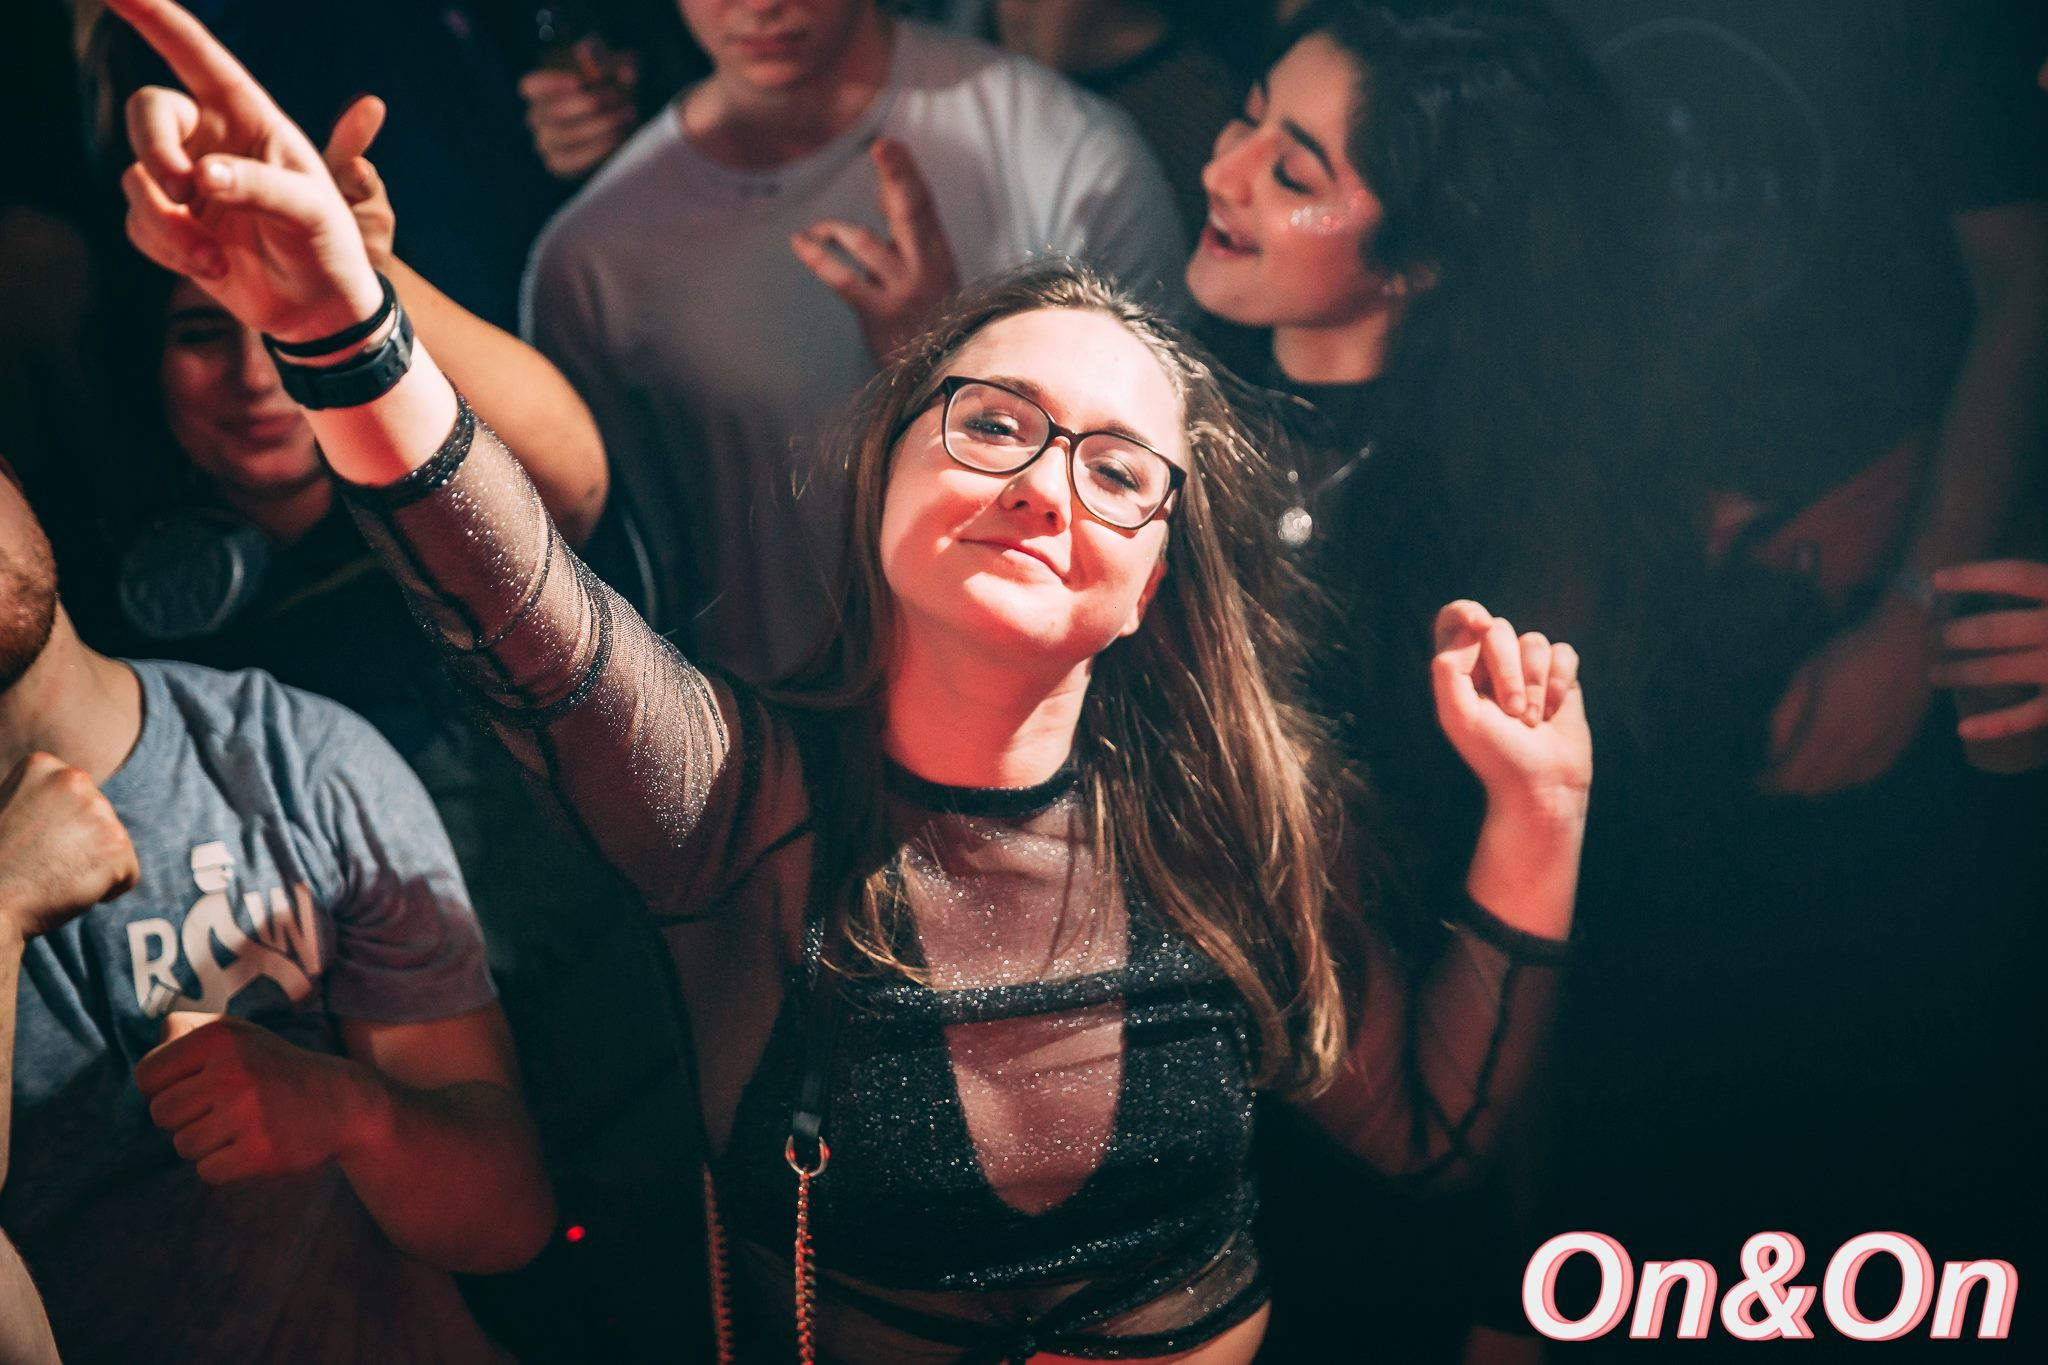 Image may contain: Leisure Activities, Finger, Party, Night Club, Club, Skin, Night Life, Accessory, Glasses, Accessories, Person, Human